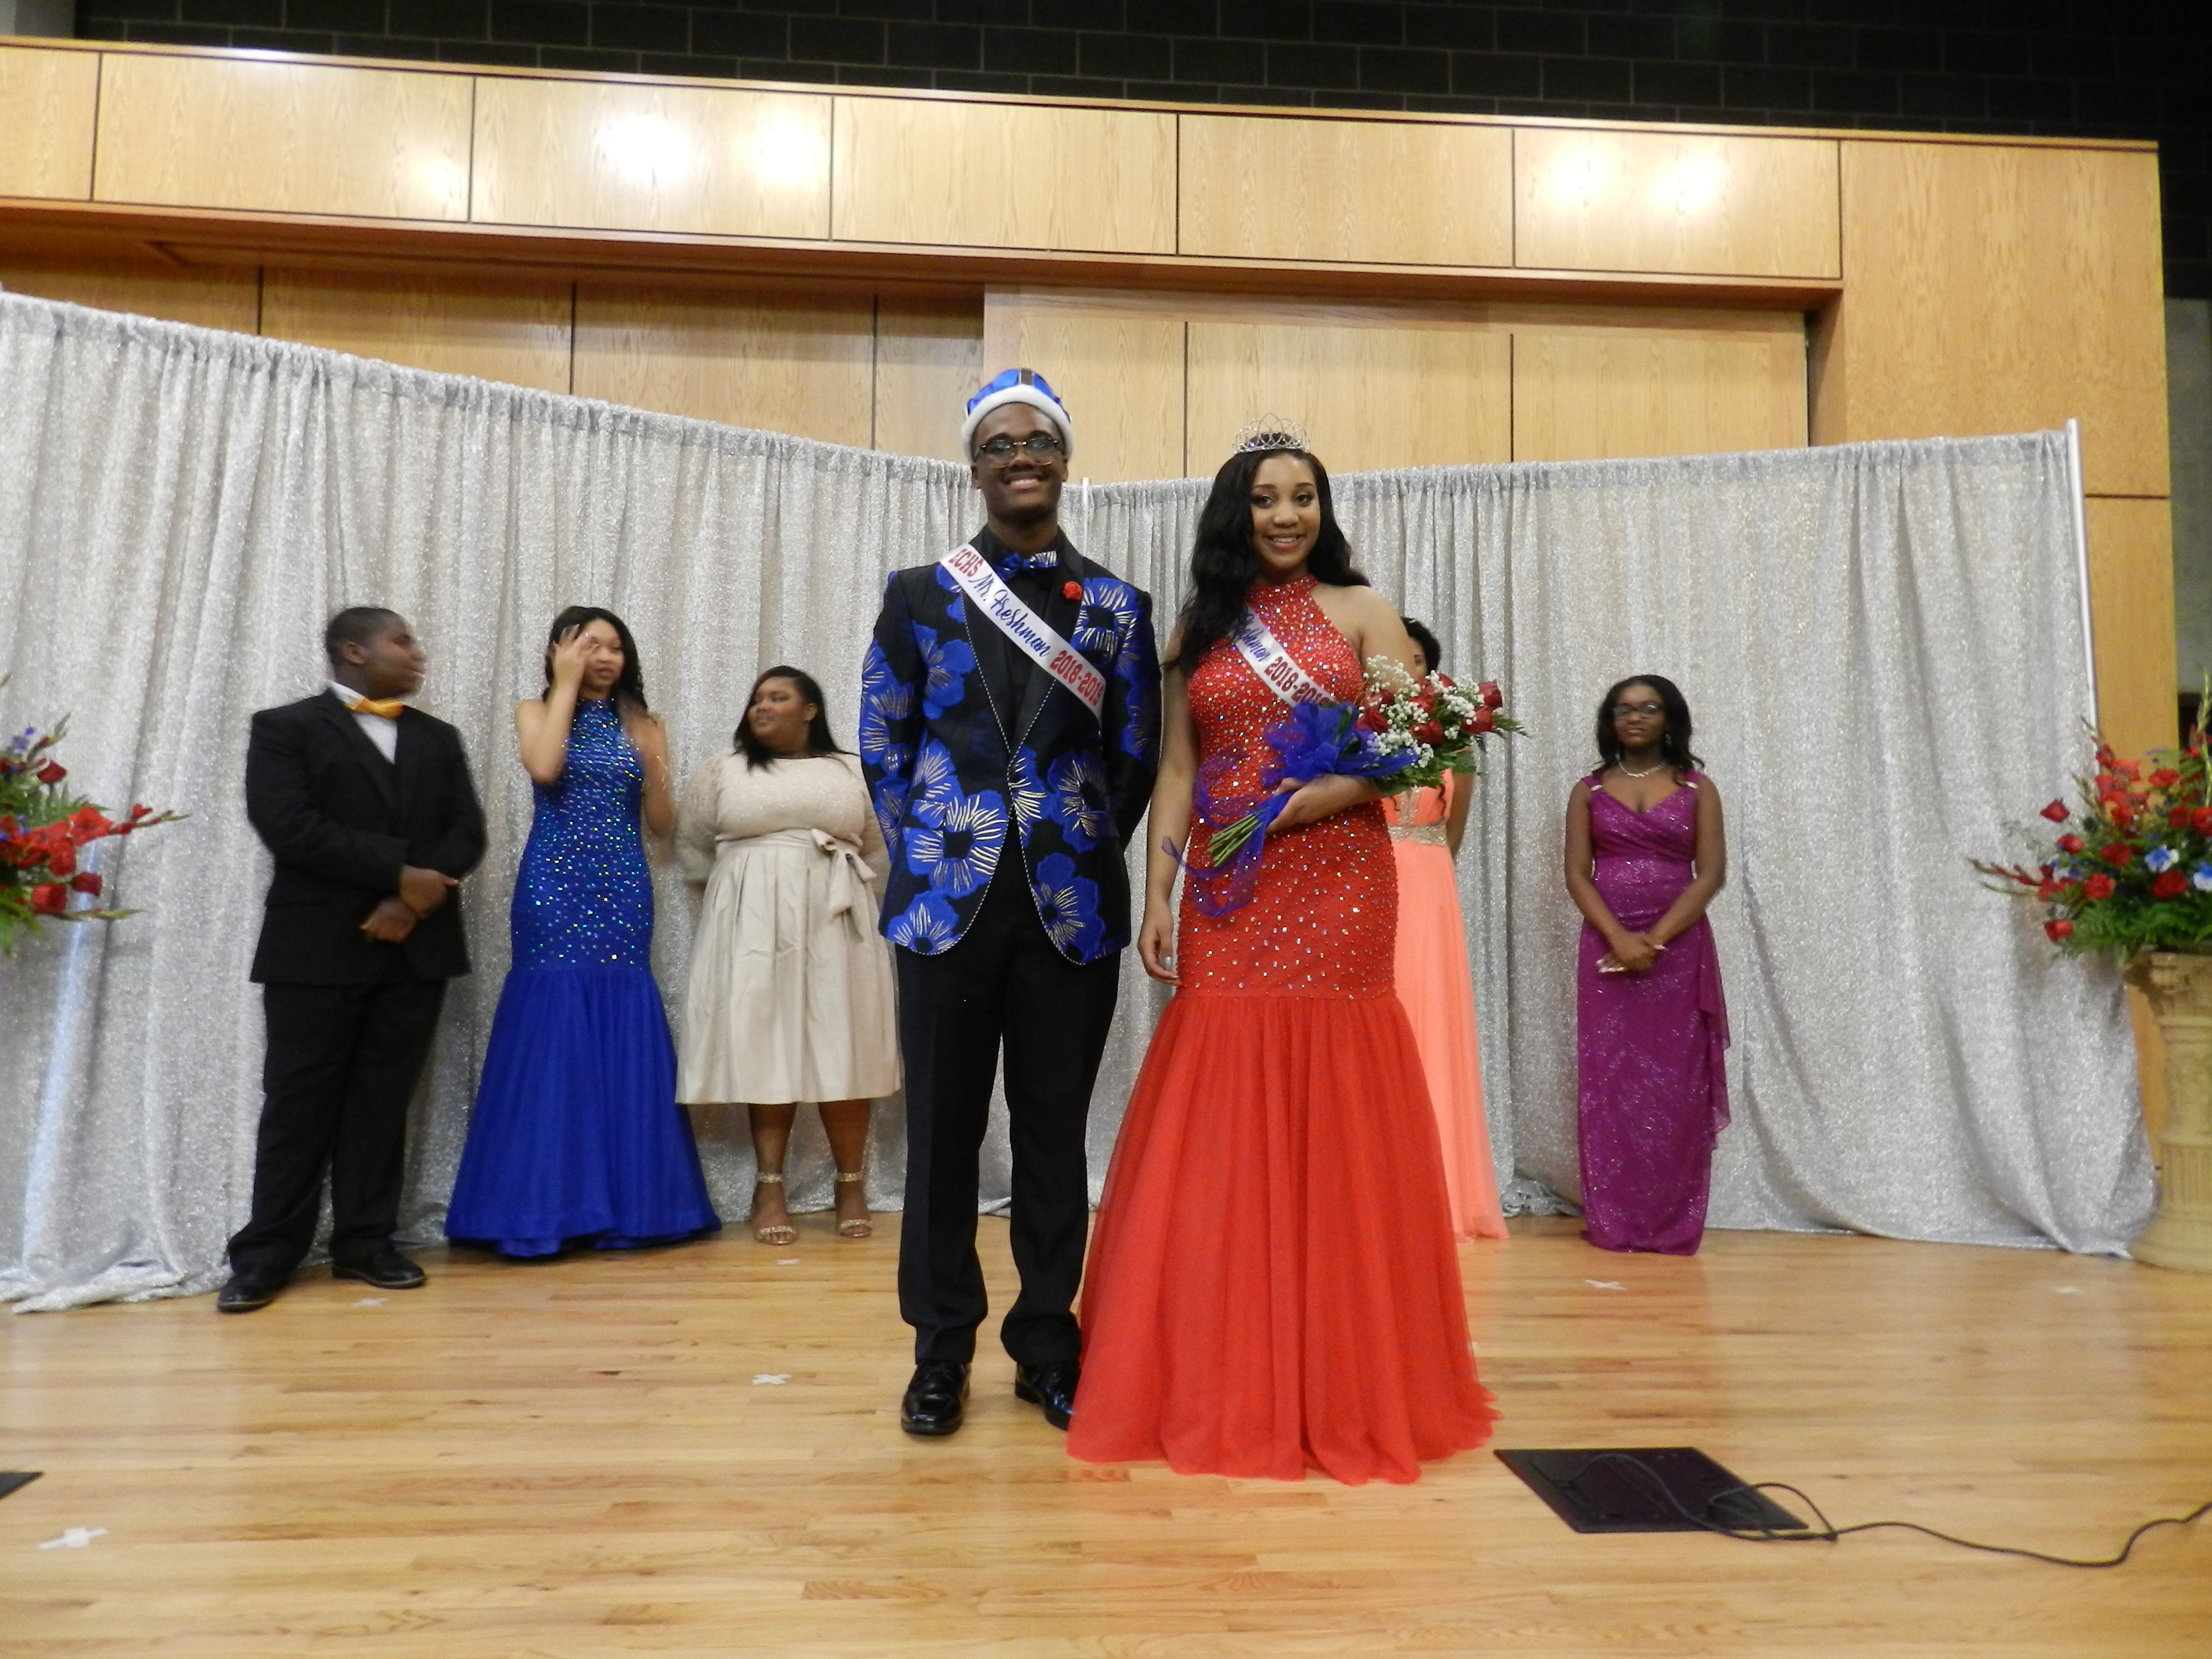 Meet the first ever Tougaloo College Early College High School Program's Mr. and Miss Freshman 2018-2019, Carlin Nichols and Markita Shell! The two were selected based on talent, formal wear and responses to social awareness questions.